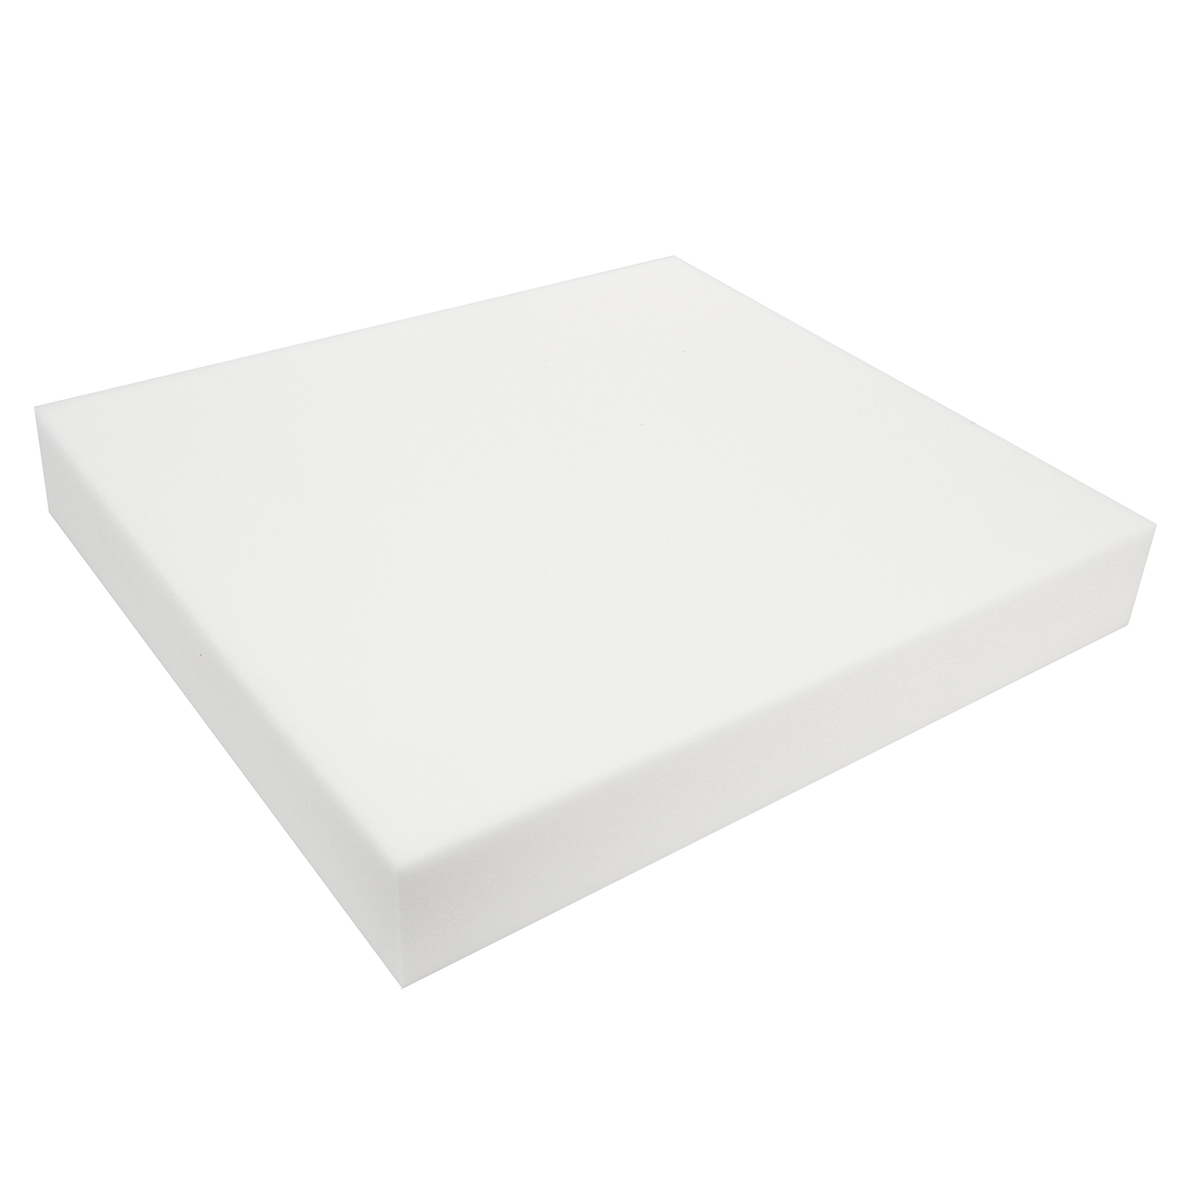 foam cushion replacement for sofa inexpensive sofas toronto high density seat upholstery